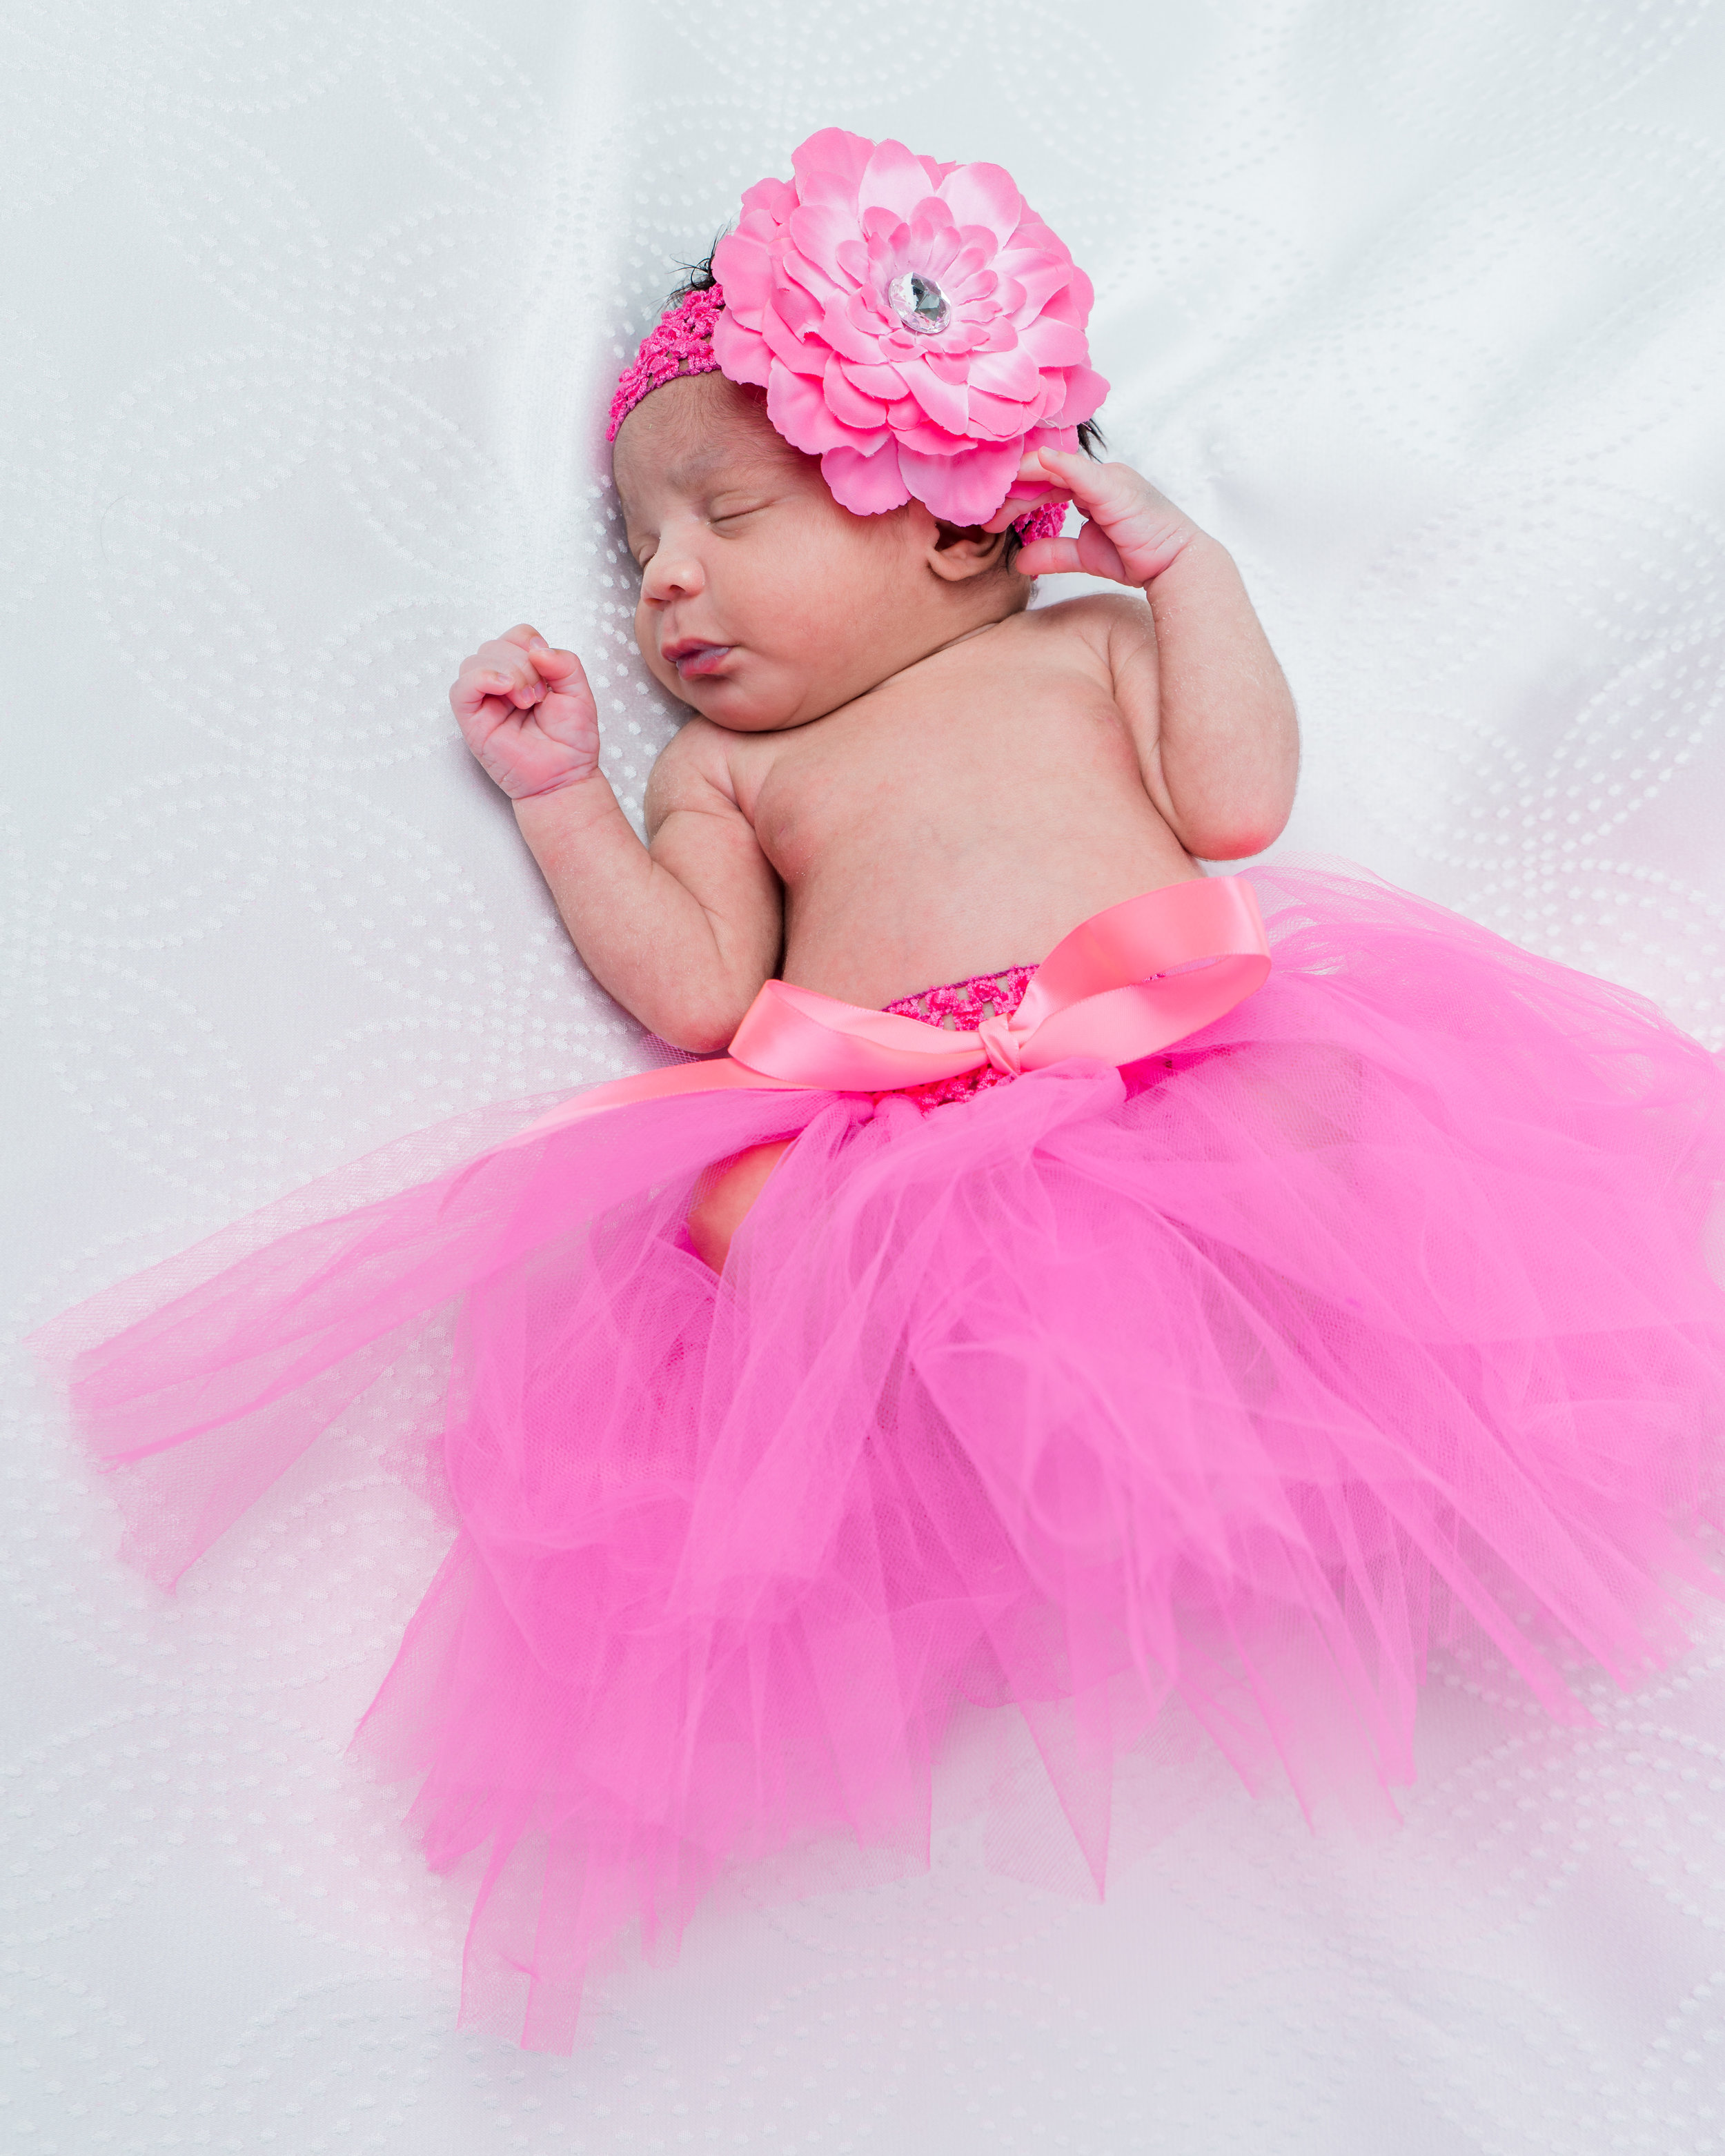 2017_December_02-Walls_Newborn_and_Family_Shoot-43623.jpg